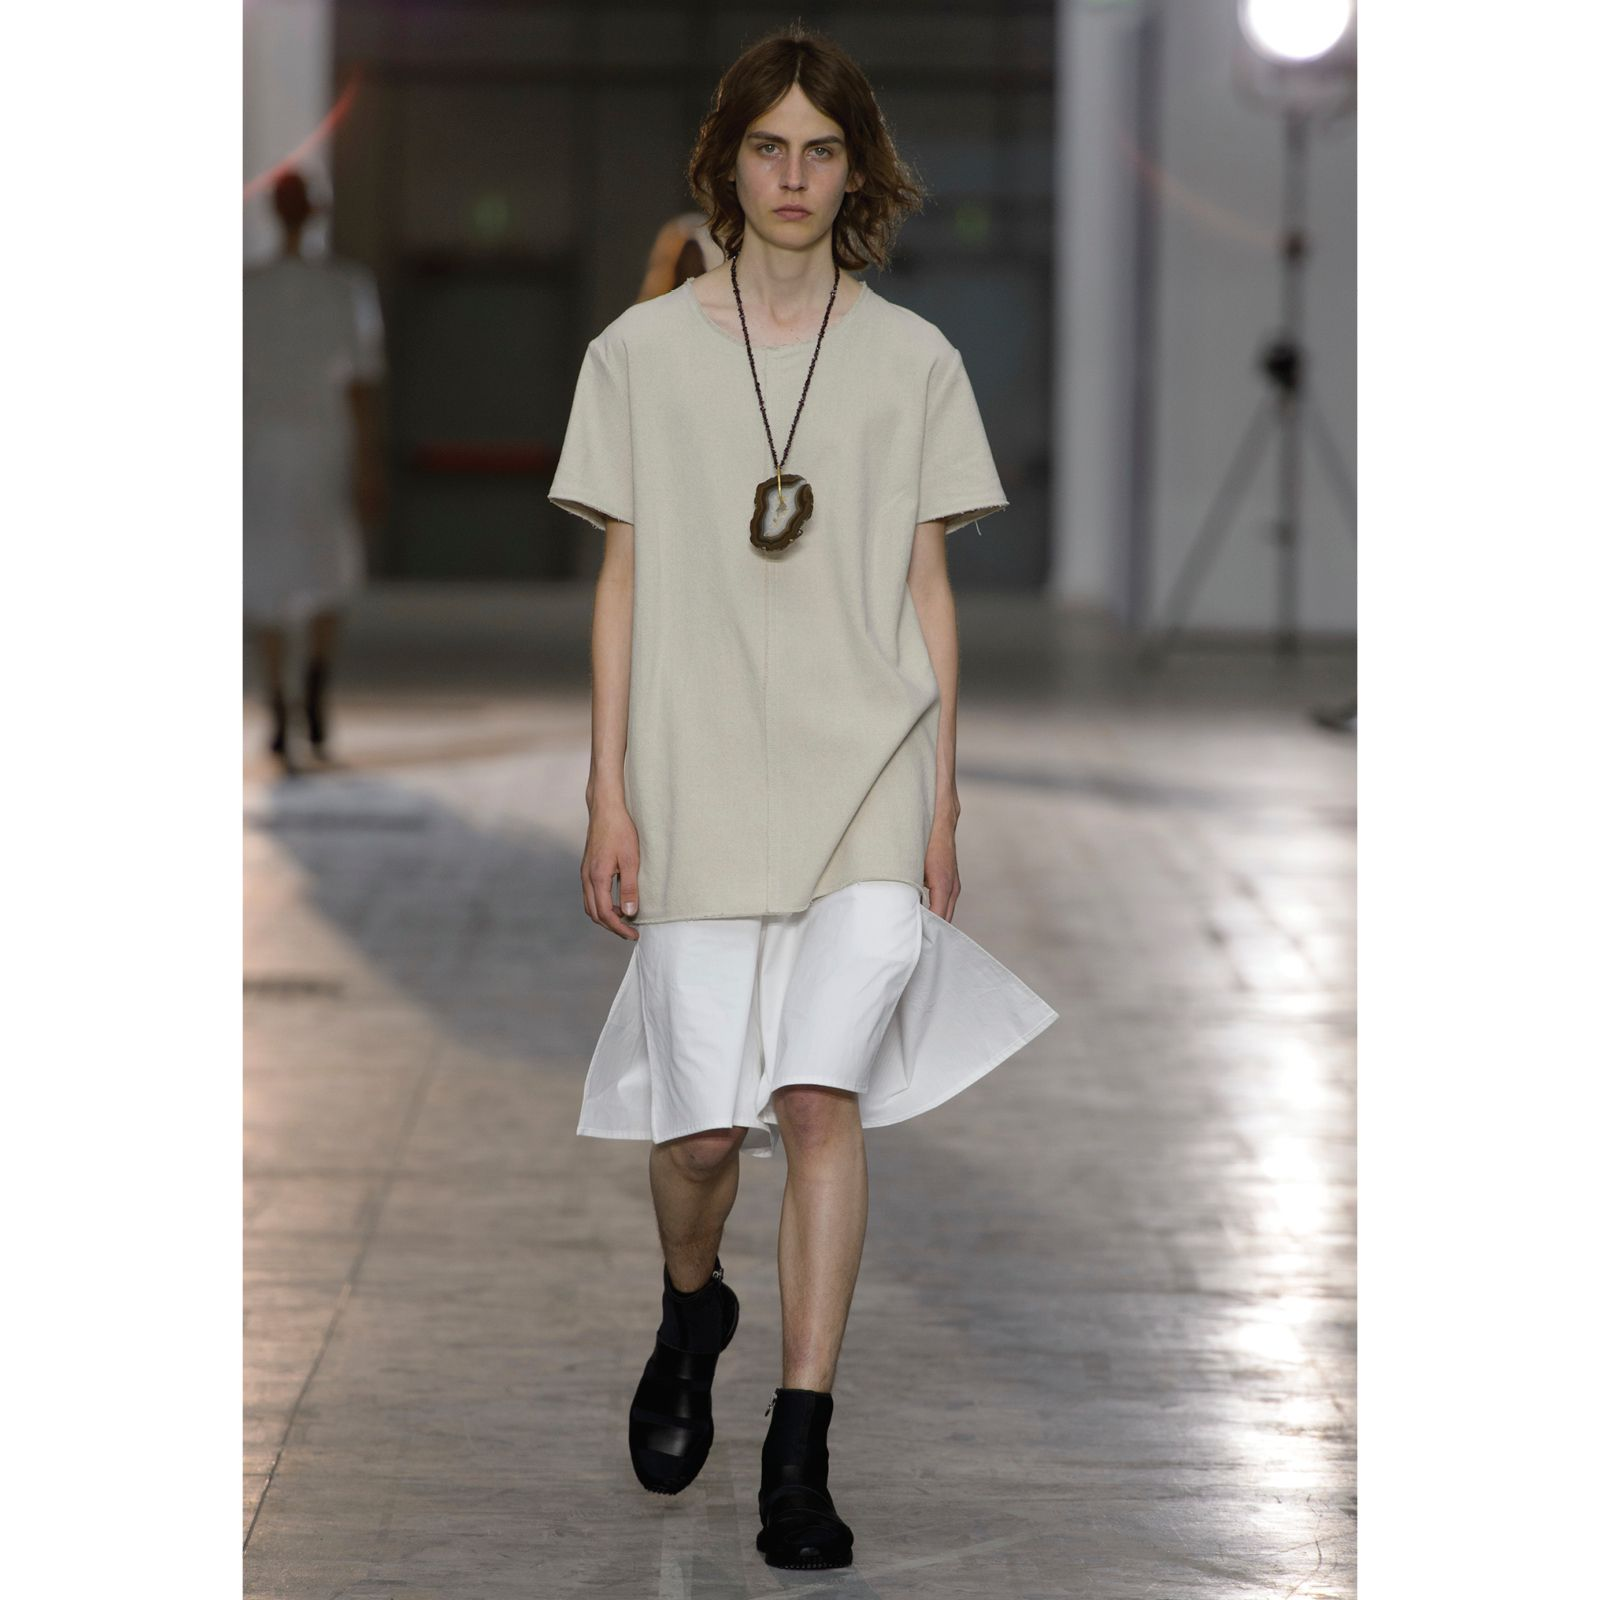 Damir Doma Men's SS16 Collection Available Online: Look 4 - Tala Short Sleeve Top, Passer Short With Side Slits And Flash Runner Shoes. Visit Our Online Store: shop.damirdoma.com  https://www.instagram.com/p/BC-2ZajJ-y1/?taken-by=damirdomaofficial